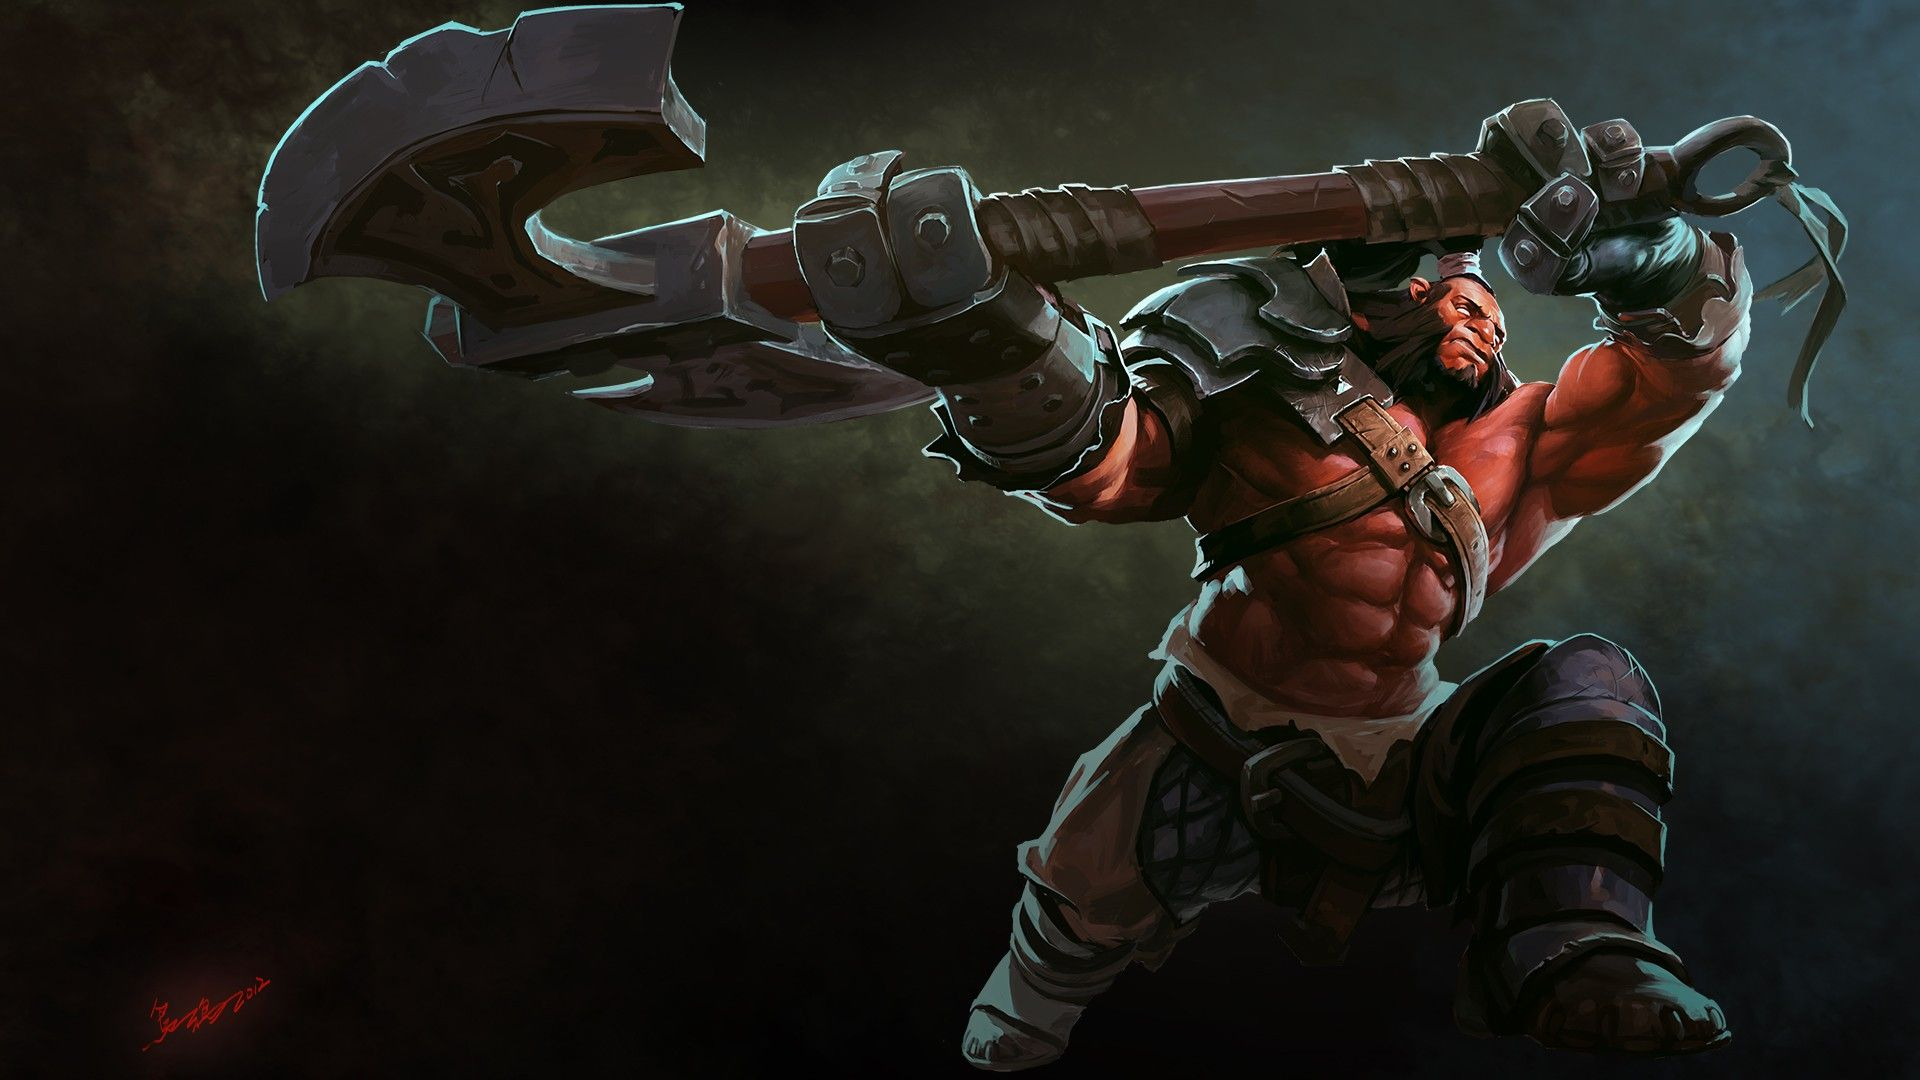 Dota 2 News Riki Drow Axe Juggernaut And Many More Nerfed With The 6 88e Patch Gosugamers